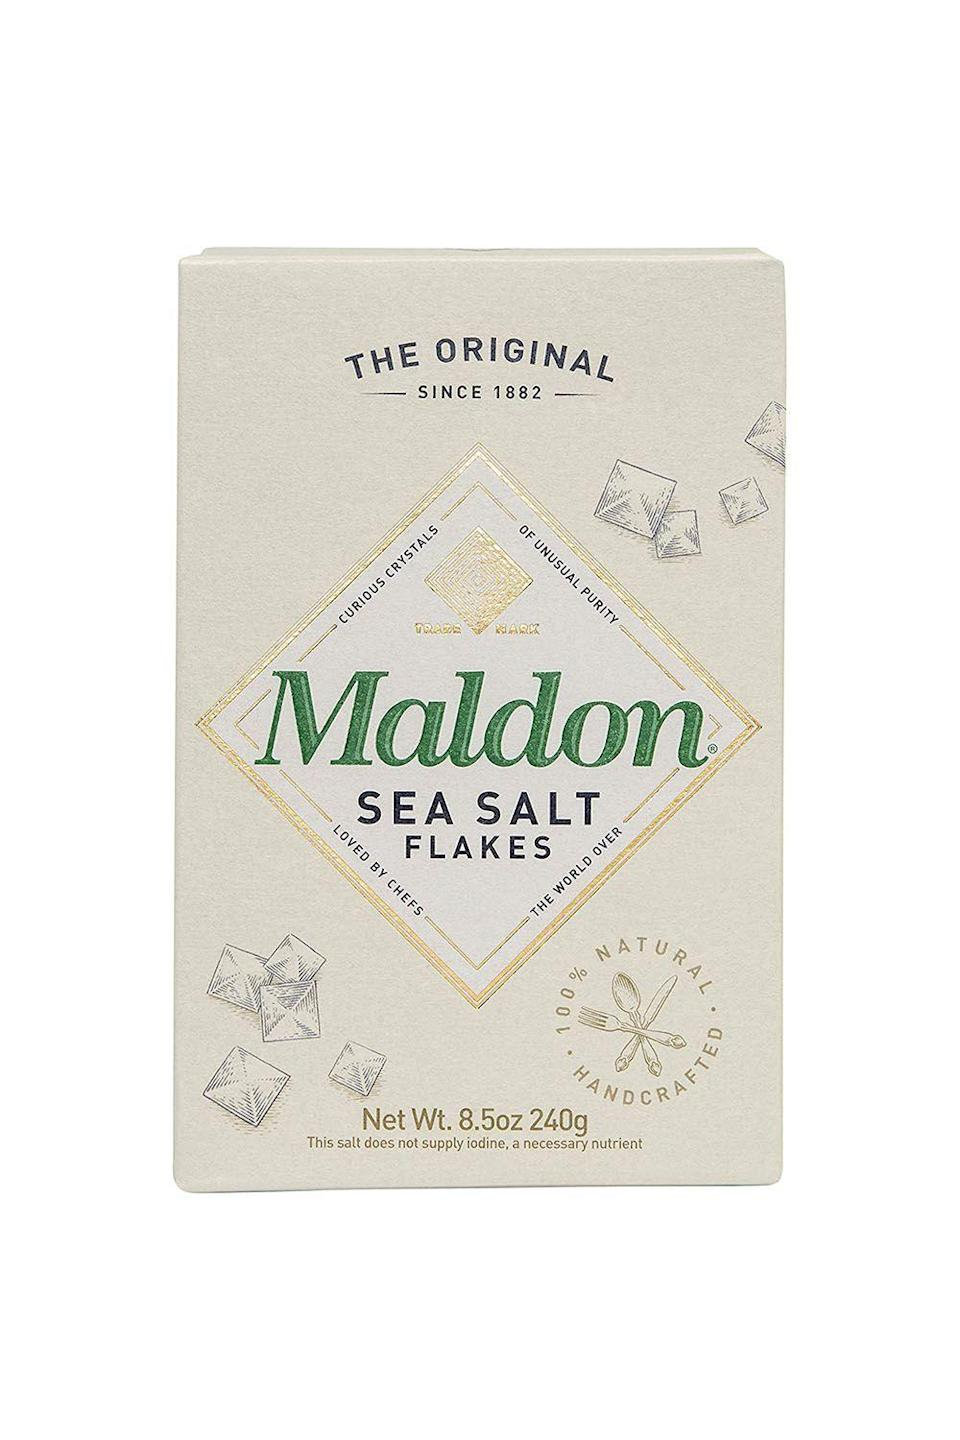 """<p><strong>Maldon</strong></p><p>amazon.com</p><p><strong>$8.44</strong></p><p><a href=""""https://www.amazon.com/dp/B00017028M?tag=syn-yahoo-20&ascsubtag=%5Bartid%7C10072.g.36429980%5Bsrc%7Cyahoo-us"""" rel=""""nofollow noopener"""" target=""""_blank"""" data-ylk=""""slk:Shop Now"""" class=""""link rapid-noclick-resp"""">Shop Now</a></p><p>If you're reading this article, chances are you've heard of Maldon. The nearly 140-year-old, family-owned brand—which harvests its giant pyramid-shaped flakes on the southeast coast of England—is not only one of the top salt brands in the world, but it's also a favorite of chefs, including six of the ones we spoke to. """"It's probably the most-used ingredient in my kitchen,"""" says <a href=""""https://www.instagram.com/hettymckinnon/?hl=en"""" rel=""""nofollow noopener"""" target=""""_blank"""" data-ylk=""""slk:Hetty McKinnon"""" class=""""link rapid-noclick-resp"""">Hetty McKinnon</a>, author of <em><a href=""""https://www.amazon.com/Asia-Love-Everyday-Recipes-Stories/dp/3791386832?tag=syn-yahoo-20&ascsubtag=%5Bartid%7C10072.g.36429980%5Bsrc%7Cyahoo-us"""" rel=""""nofollow noopener"""" target=""""_blank"""" data-ylk=""""slk:To Asia, With Love"""" class=""""link rapid-noclick-resp"""">To Asia, With Love</a>. </em>""""I keep a big canister of it on my countertop, because a hit of it really brings out the flavor in everything we cook."""" </p><p>Garten sprinkles a few flakes of Maldon on her freshly-baked pot pies; <a href=""""https://www.instagram.com/danimoreiracamia/?hl=en"""" rel=""""nofollow noopener"""" target=""""_blank"""" data-ylk=""""slk:Daniela Moreira"""" class=""""link rapid-noclick-resp"""">Daniela Moreira</a>, co-owner and executive chef of <a href=""""https://www.callyourmotherdeli.com/"""" rel=""""nofollow noopener"""" target=""""_blank"""" data-ylk=""""slk:Call Your Mother"""" class=""""link rapid-noclick-resp"""">Call Your Mother</a> in Washington D.C., incorporates it into the deli's everything bagel seasoning; and at New York City's <a href=""""https://www.bessou.nyc/"""" rel=""""nofollow noopener"""" target=""""_blank"""" data-ylk=""""slk:Bessou"""" class=""""link rapid-noclick-resp"""">Bessou</a"""